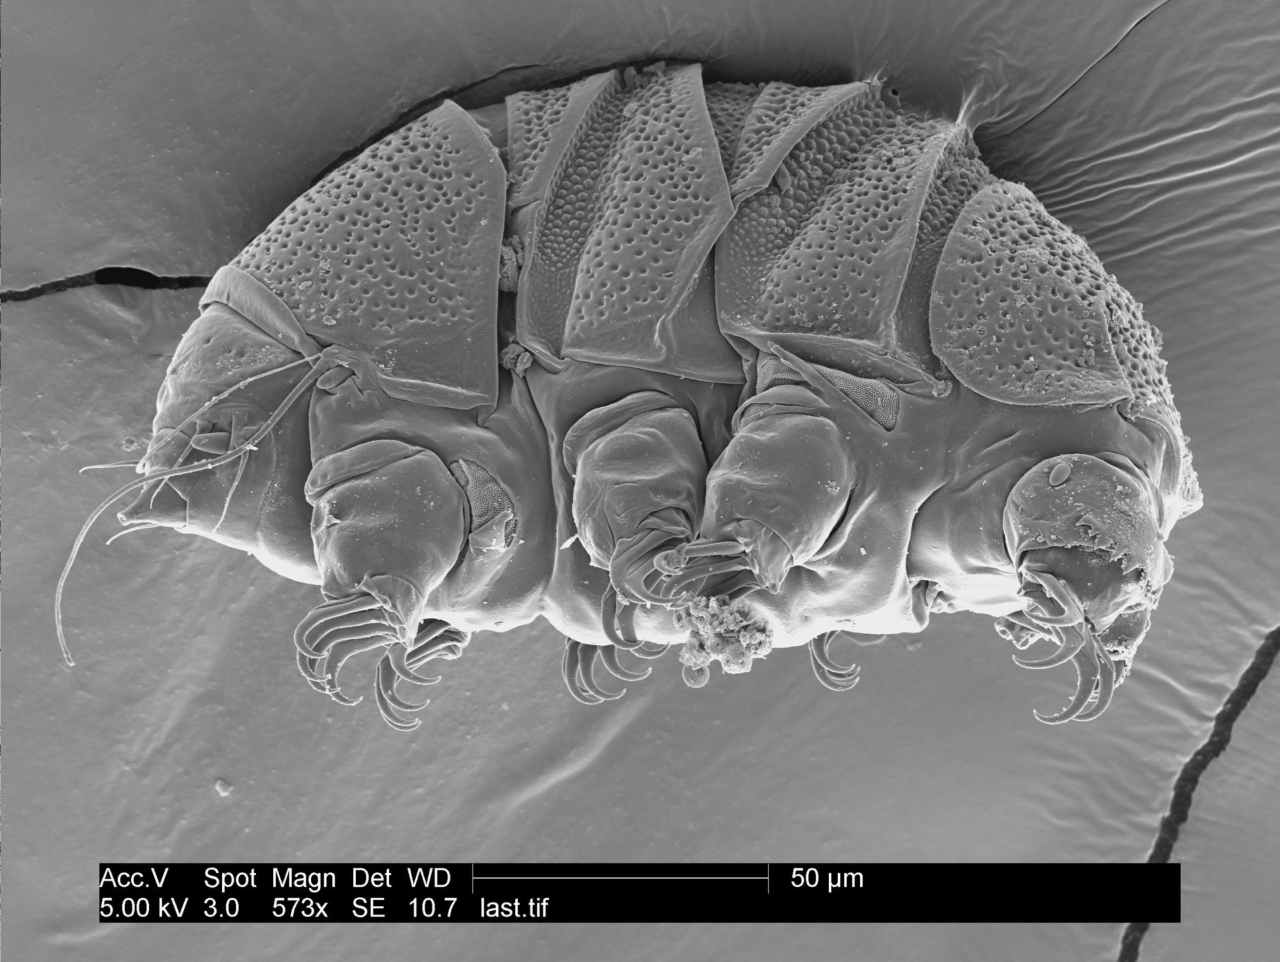 Tiny water bears could teach us how to survive extreme environments, science says